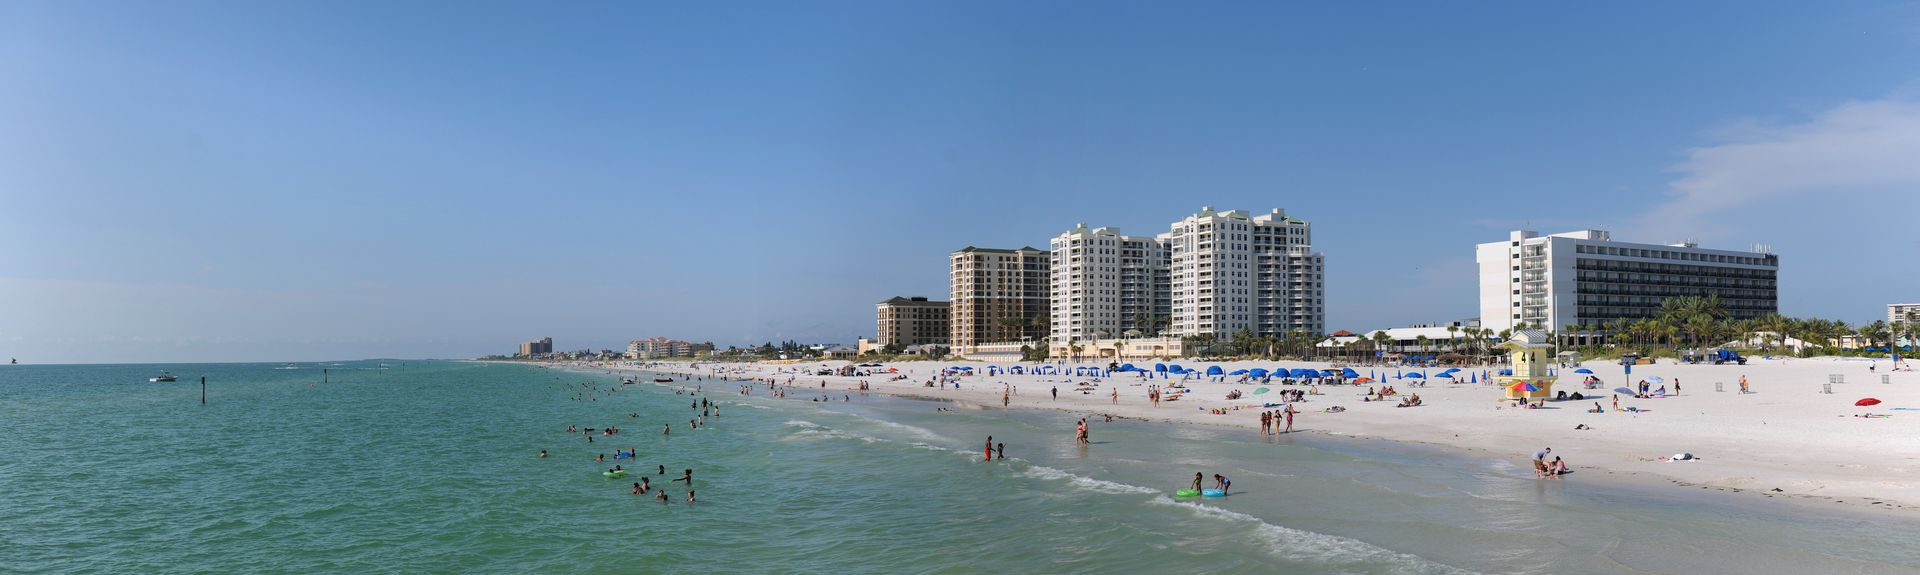 Clearwater Beach, Clearwater, Florida, Forente Stater